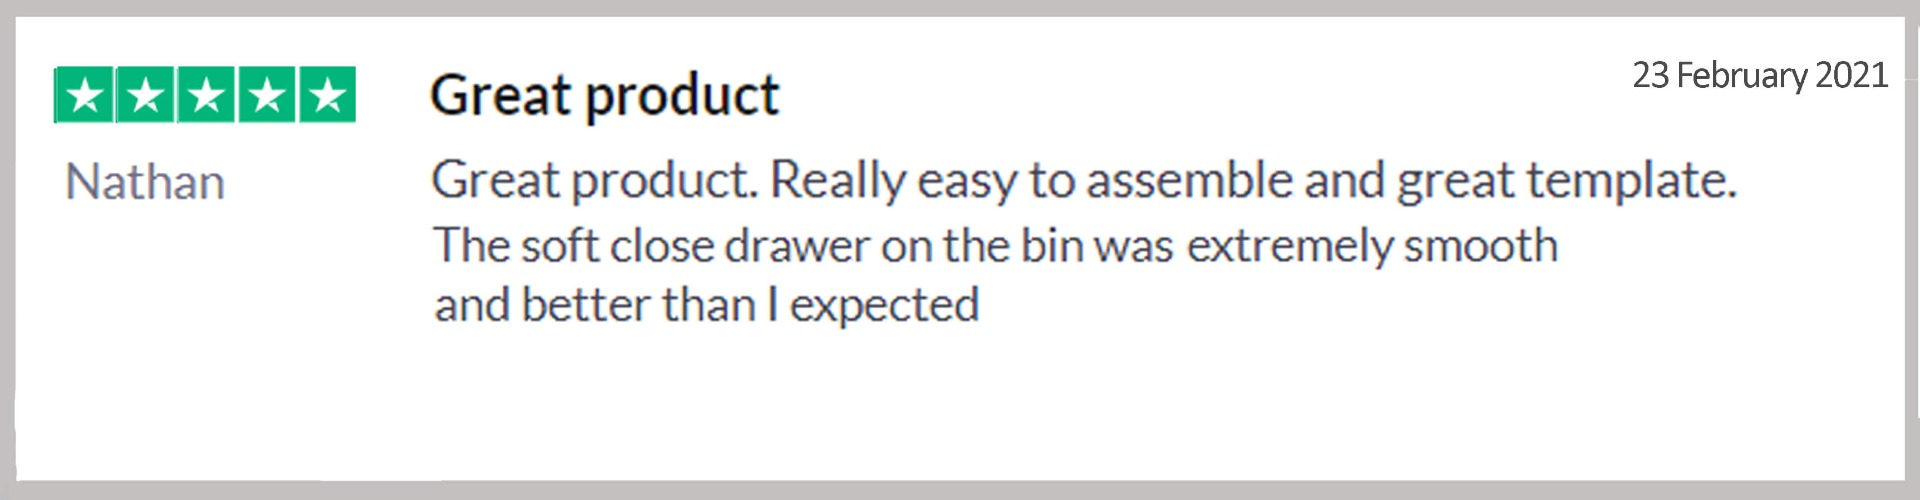 32L double concealed waste bin online purchase review